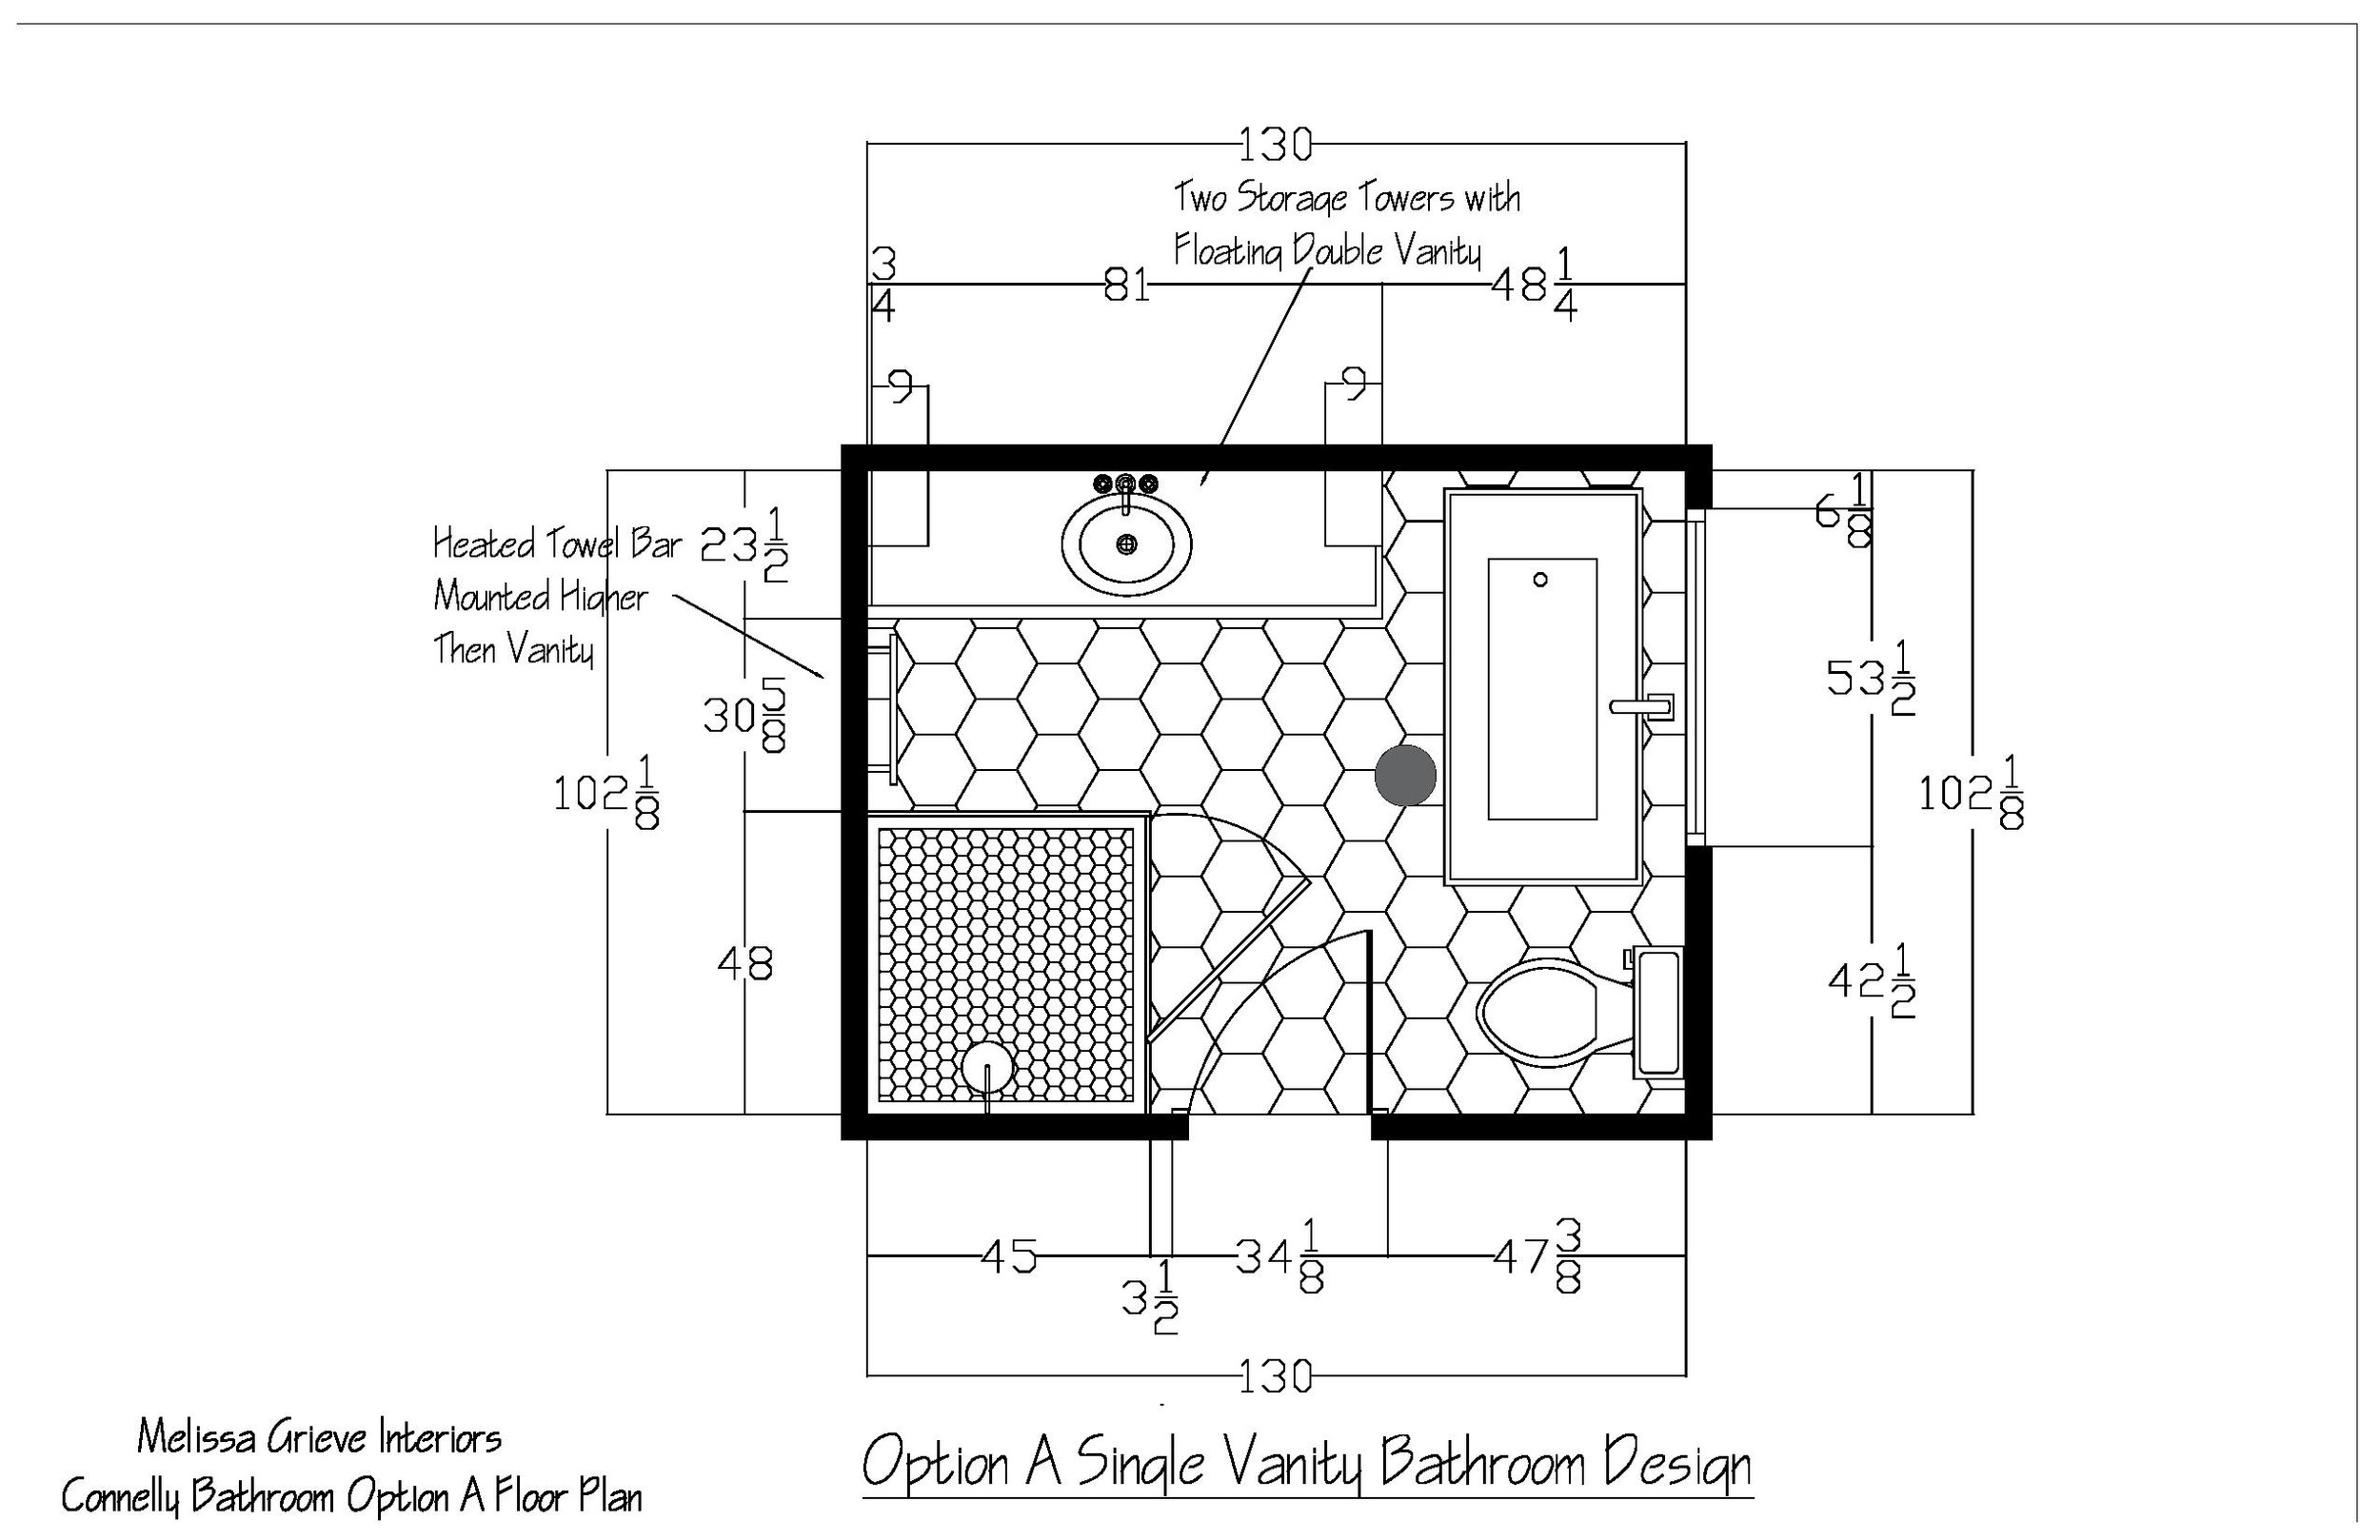 Connelly+Bathroom+Option+A+Floor+Plan+Revised-page-001 (1).jpg